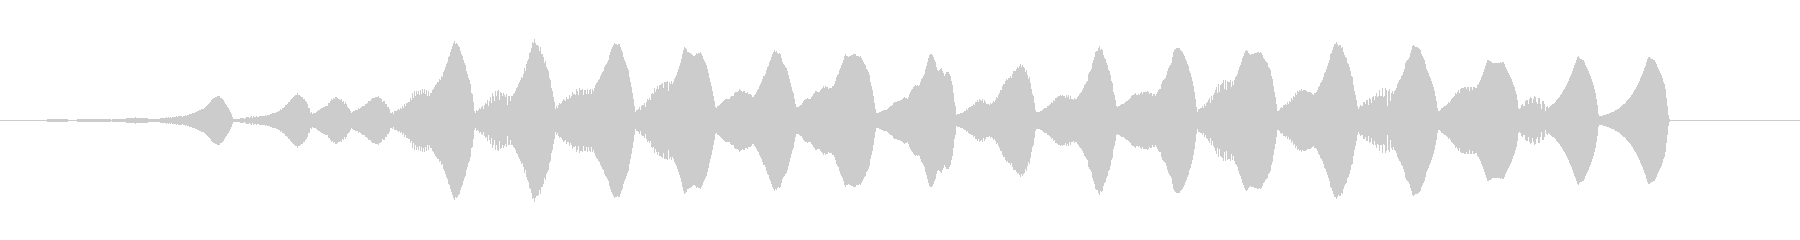 SE01-3 with the sound of flying butterflies's unreproduced waveform